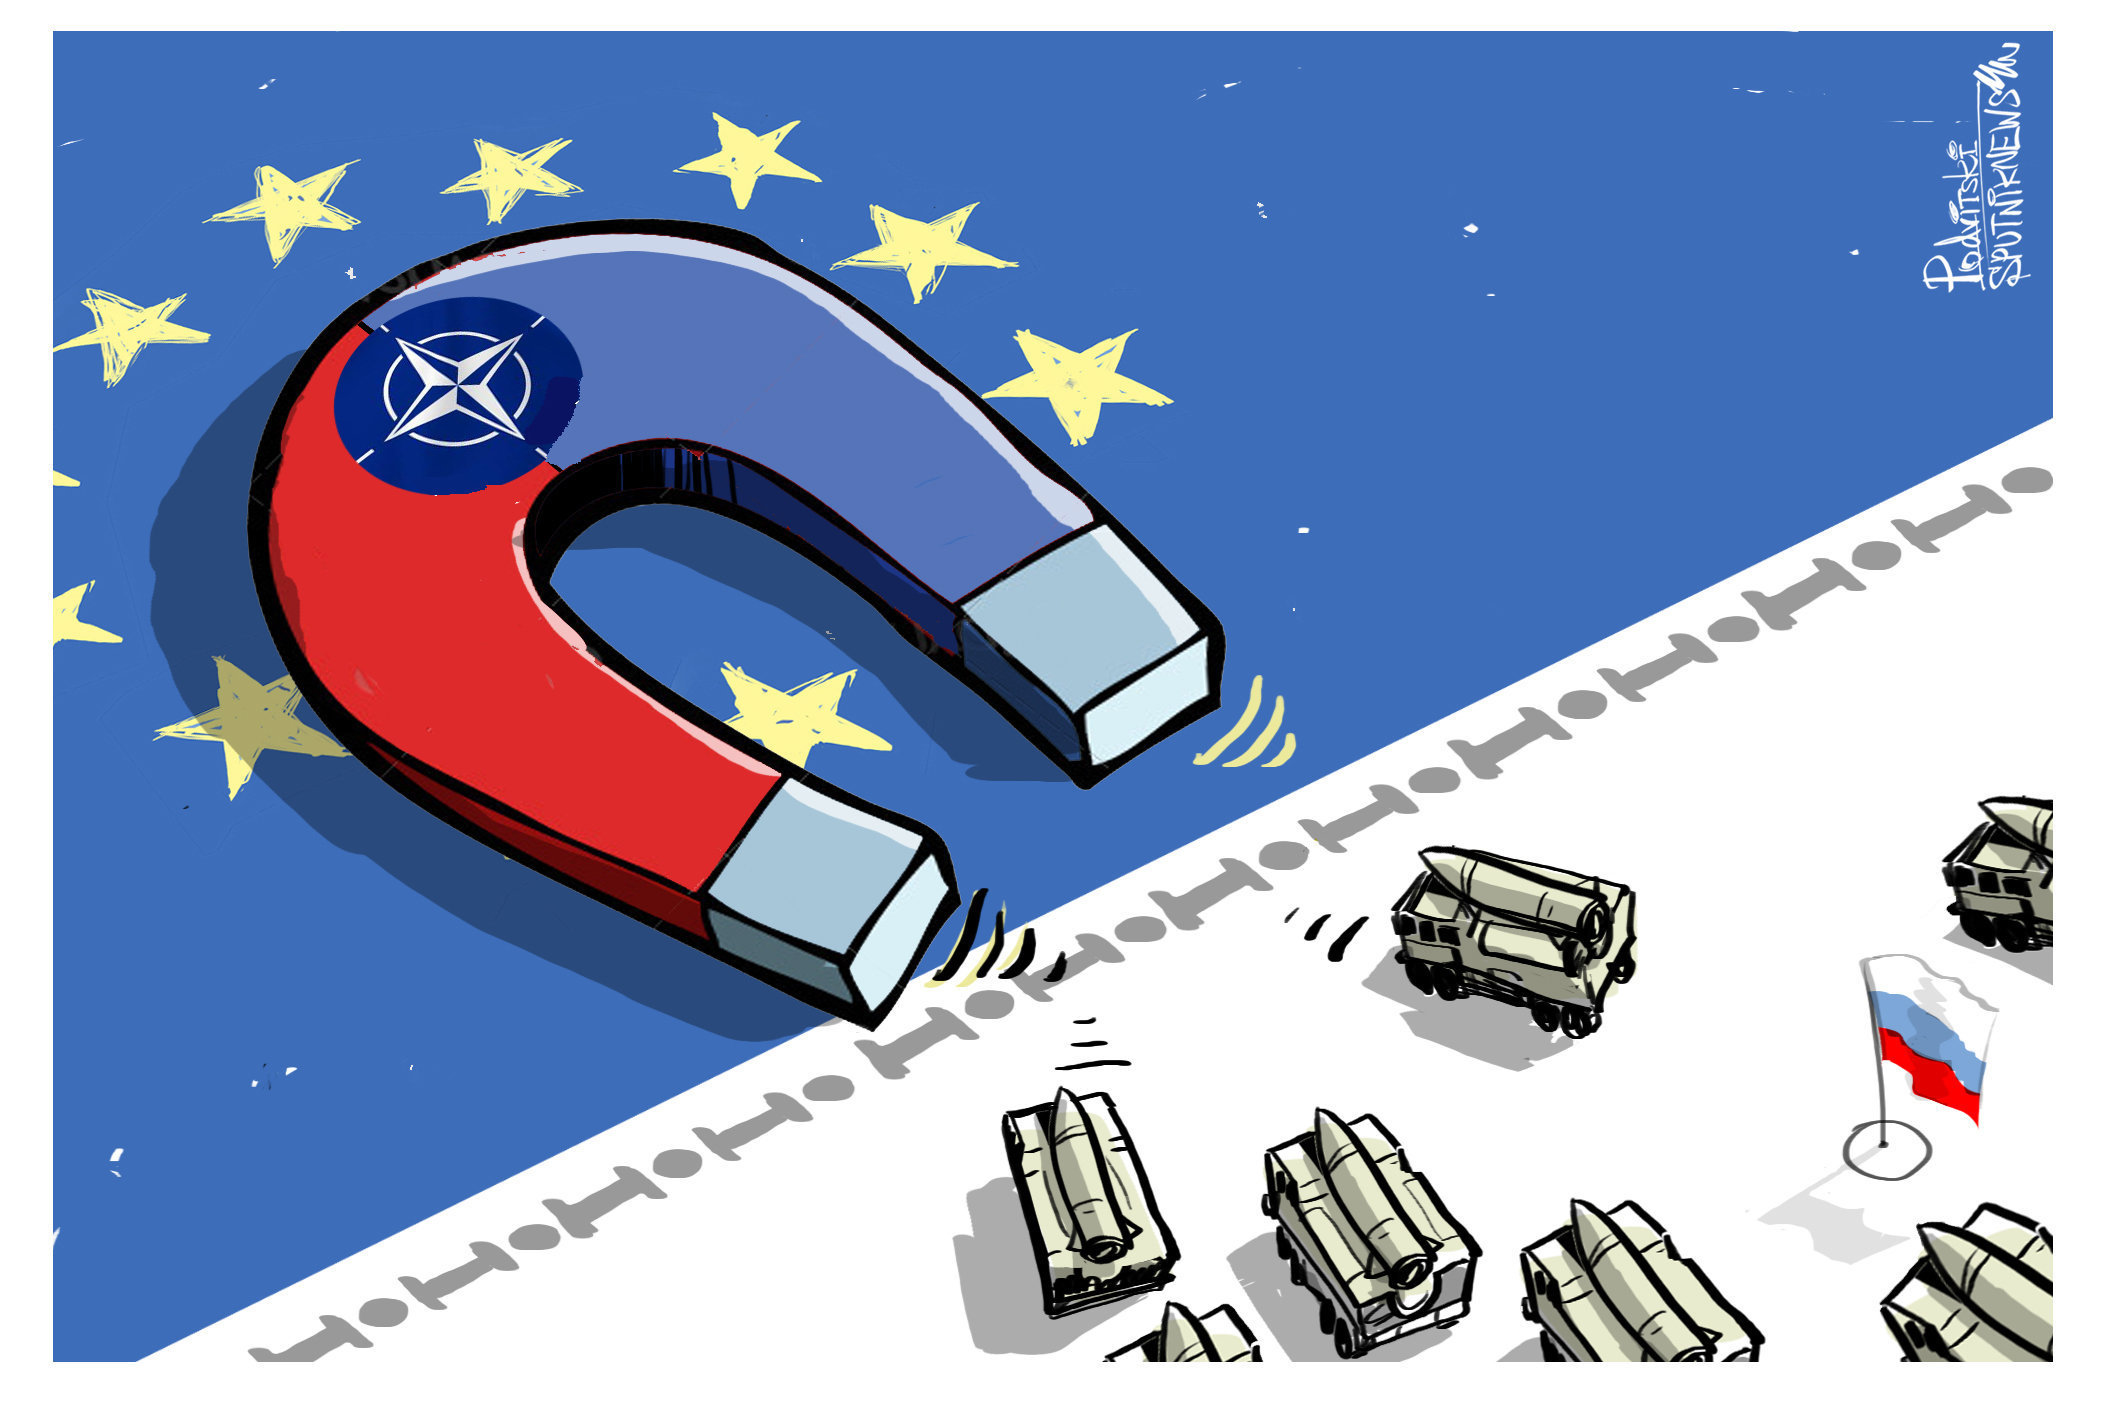 NATO cartoon